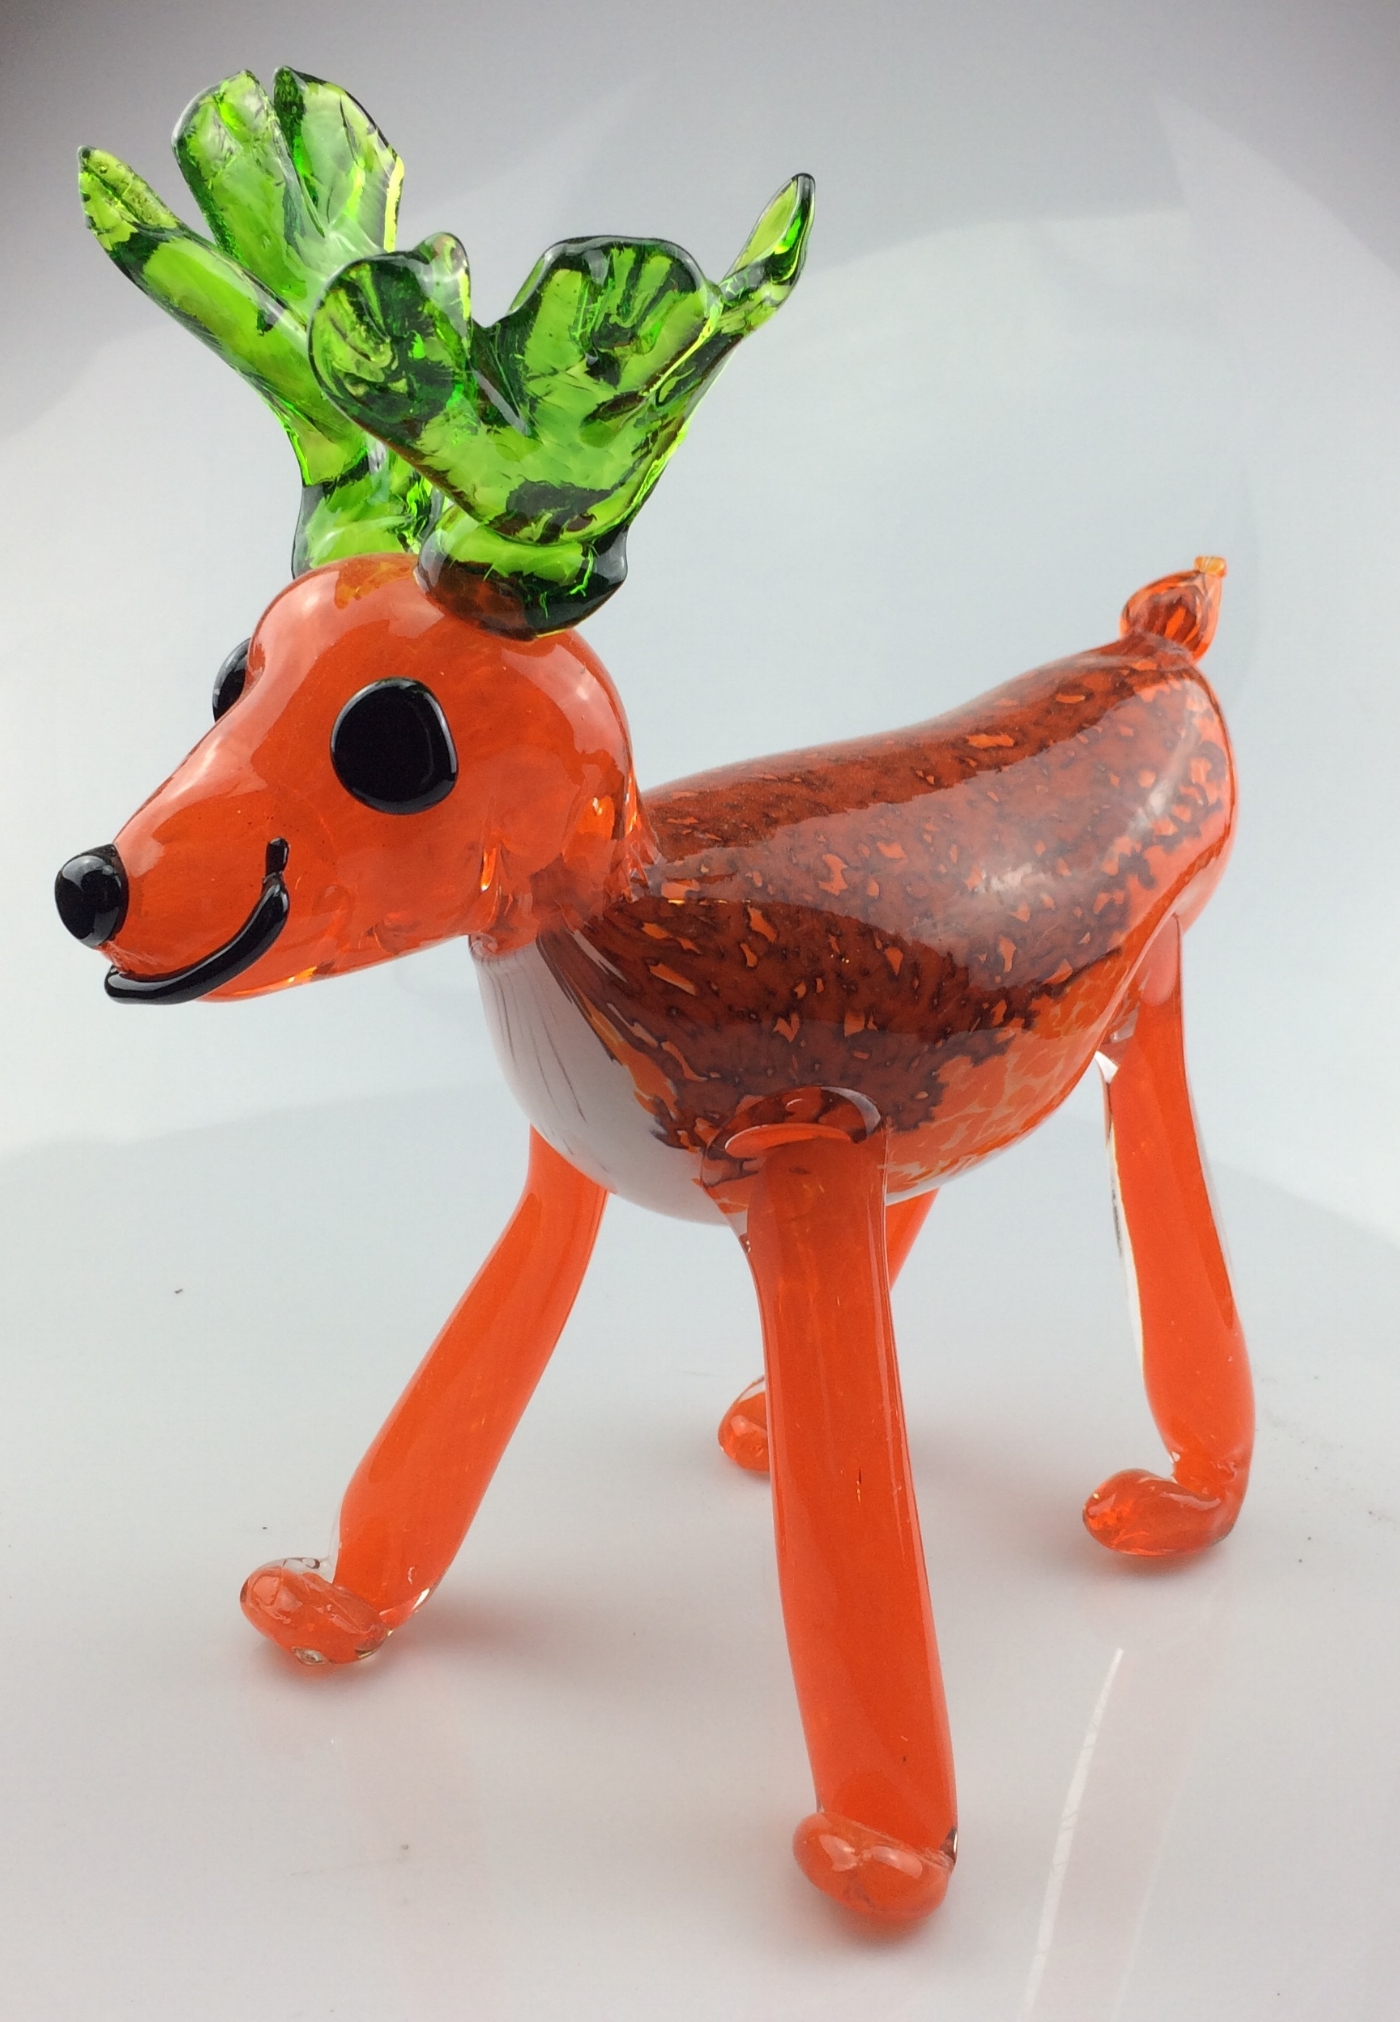 13 A Child Designs the Trophy - Caribou example.JPG